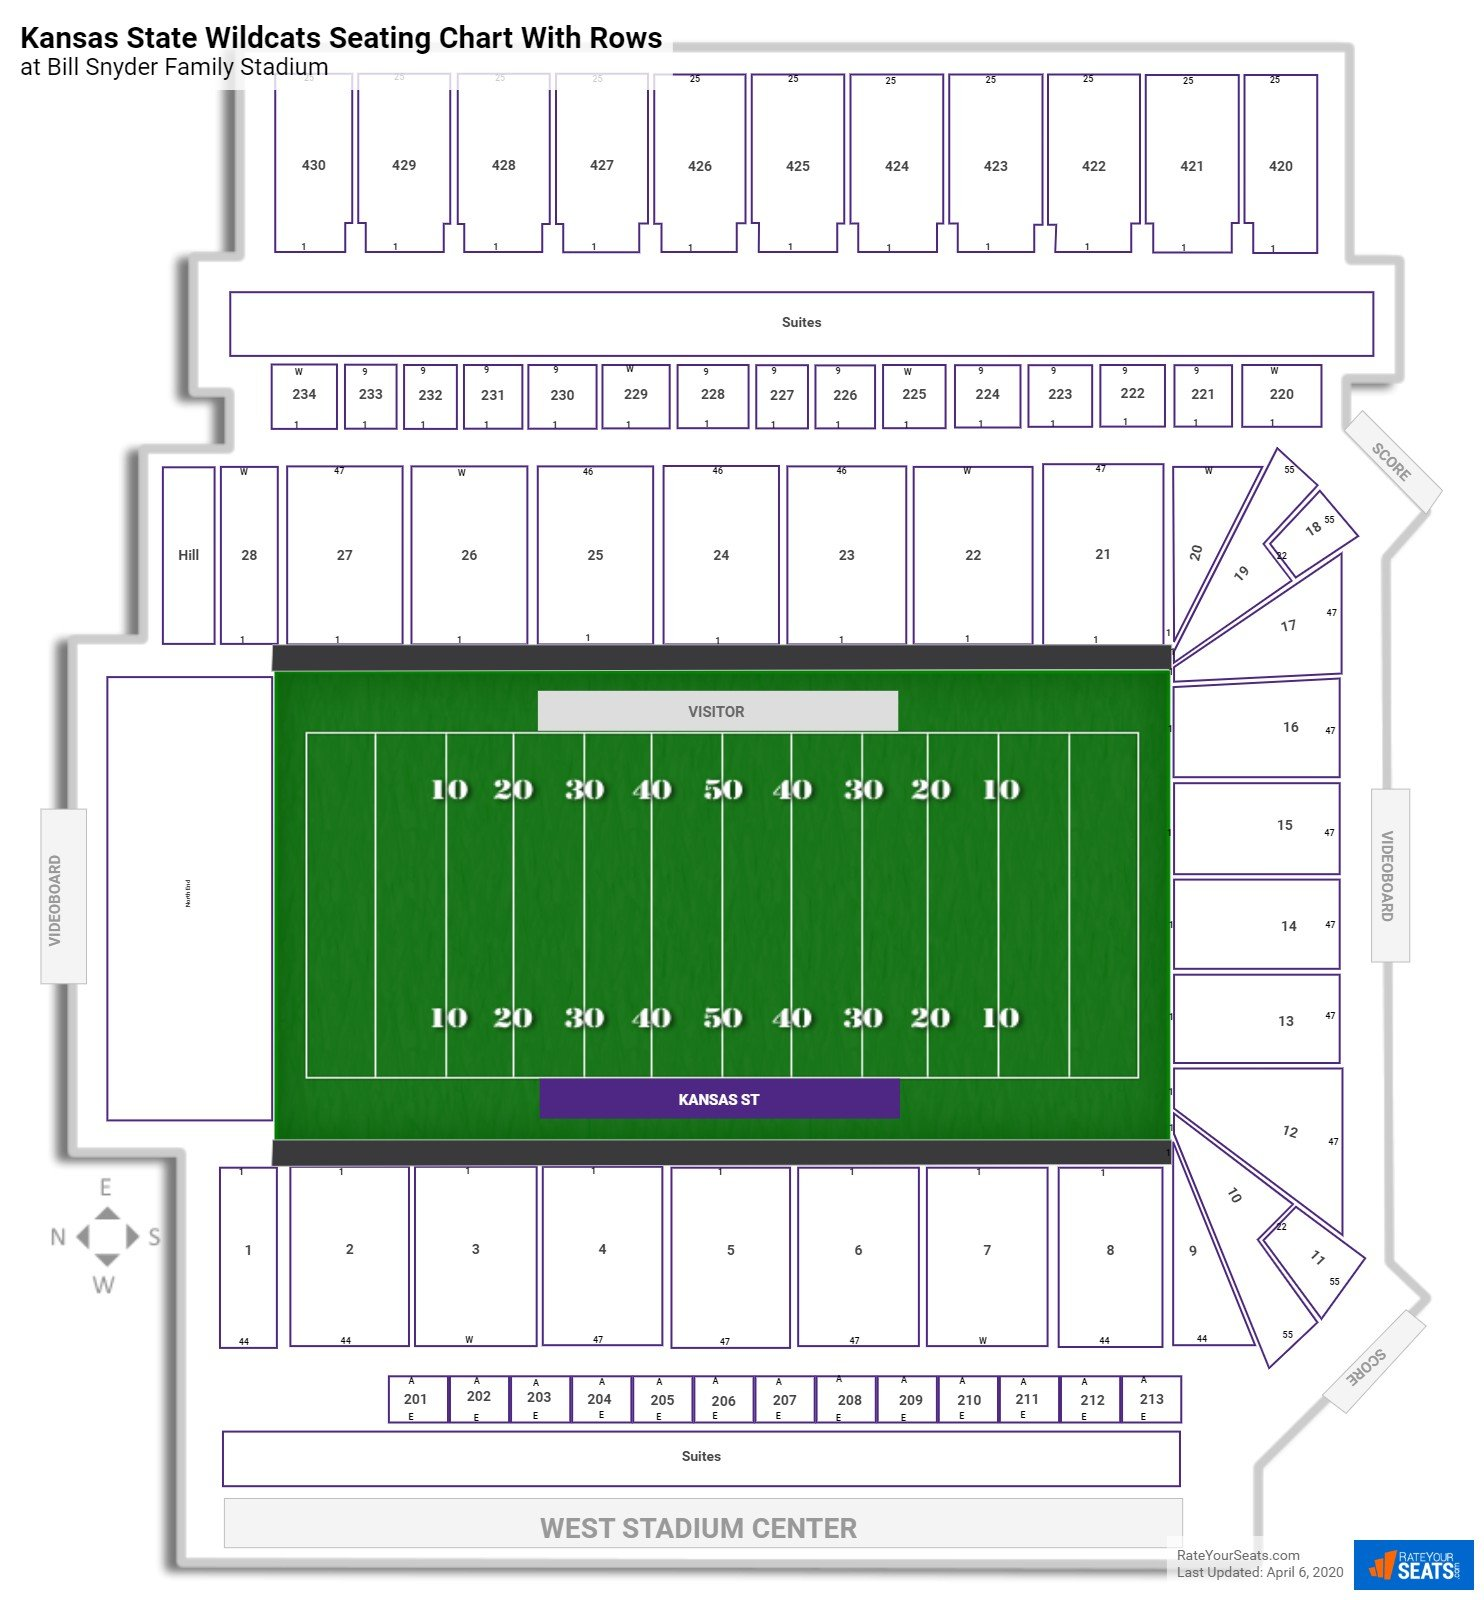 Bill Snyder Family Stadium seating chart with rows